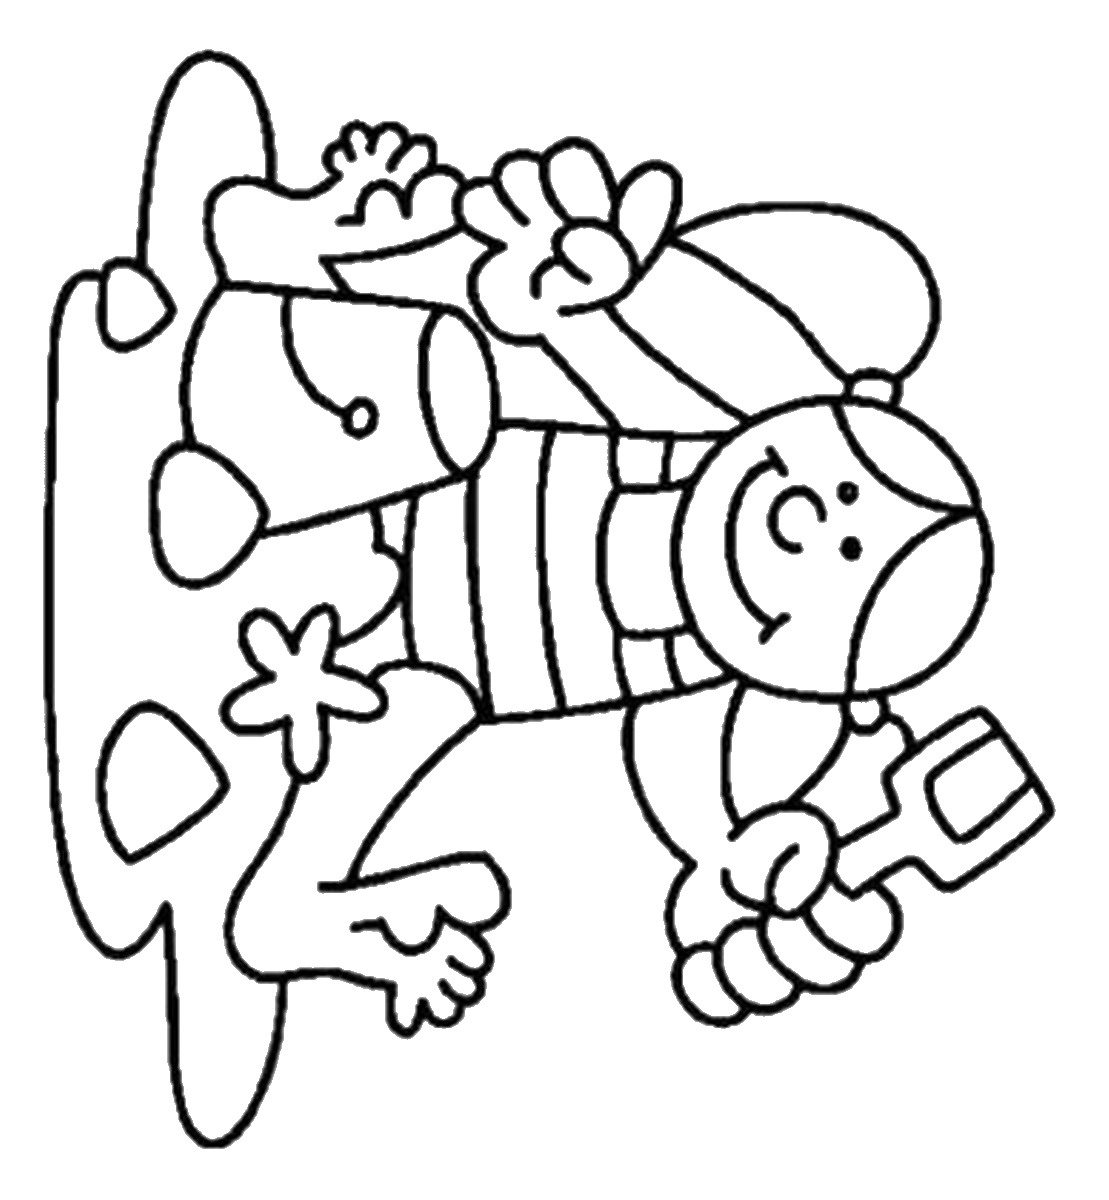 summer holiday coloring pages summer holiday coloring pages free to download gtgt disney pages summer holiday coloring